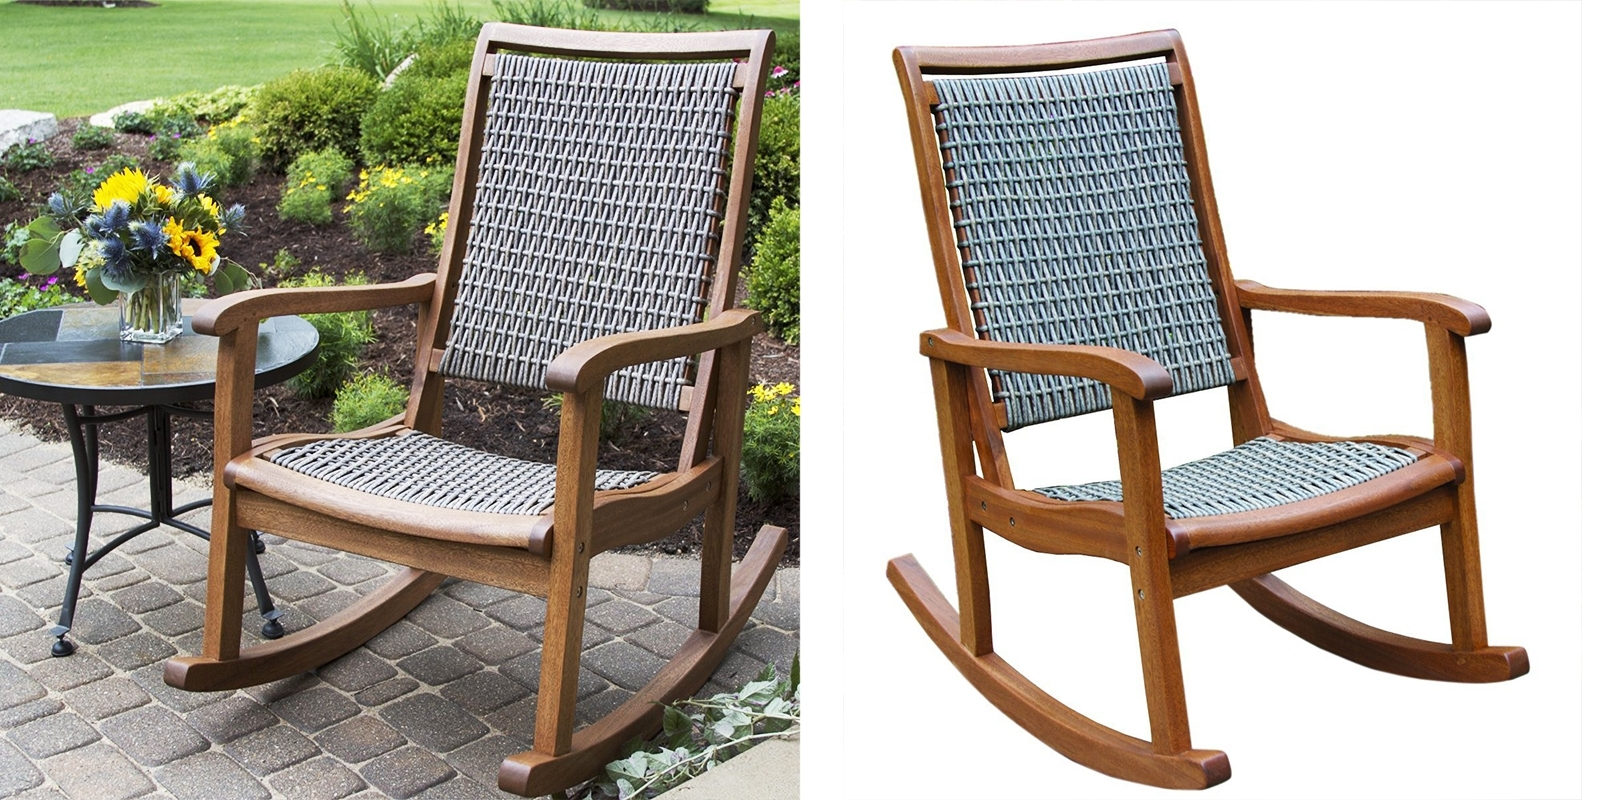 Most Up To Date Resin Wicker And Eucalyptus Rocking Chair — Homebnc With Resin Wicker Patio Rocking Chairs (View 8 of 20)